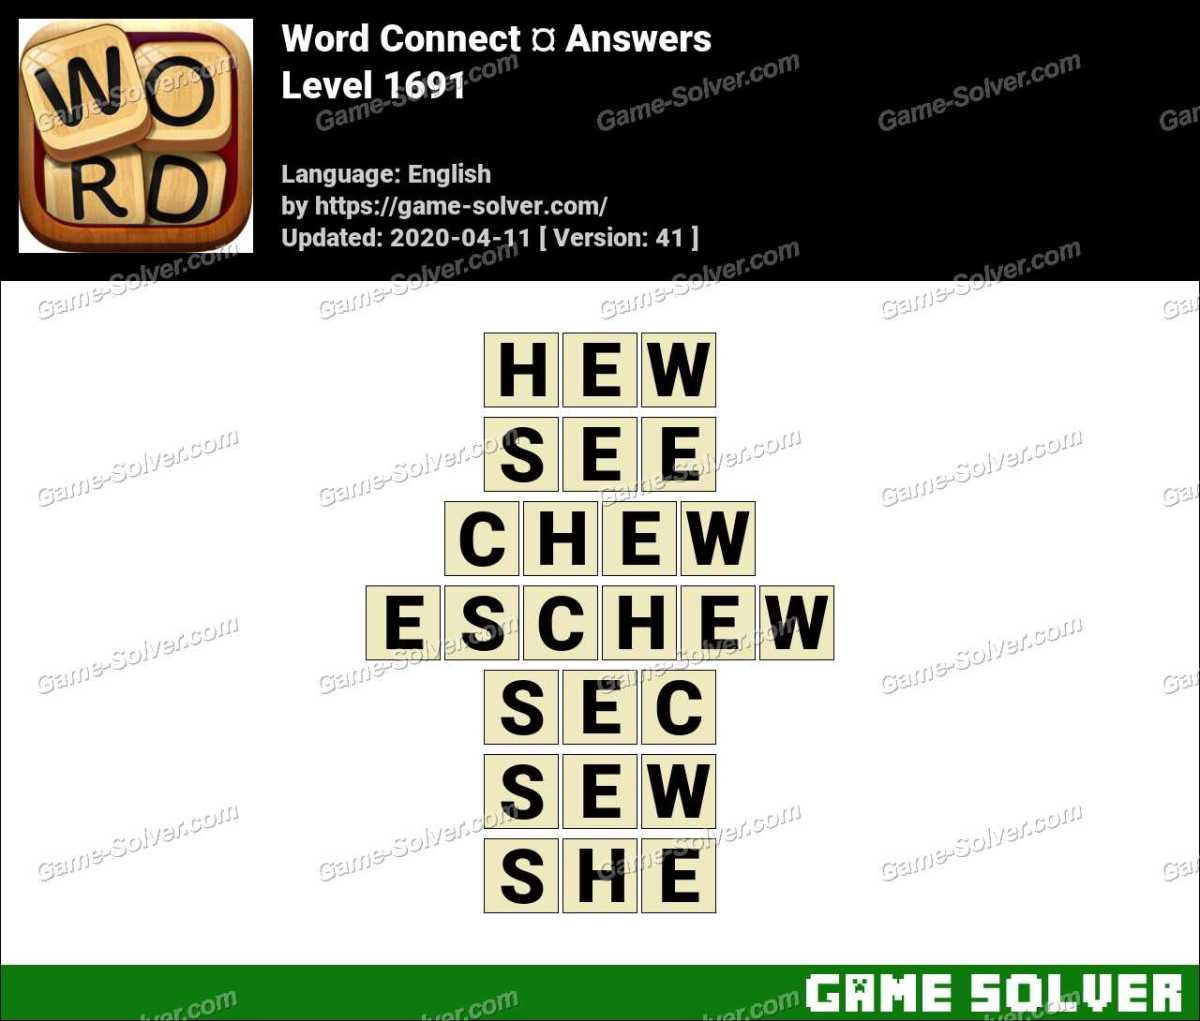 Word Connect Level 1691 Answers